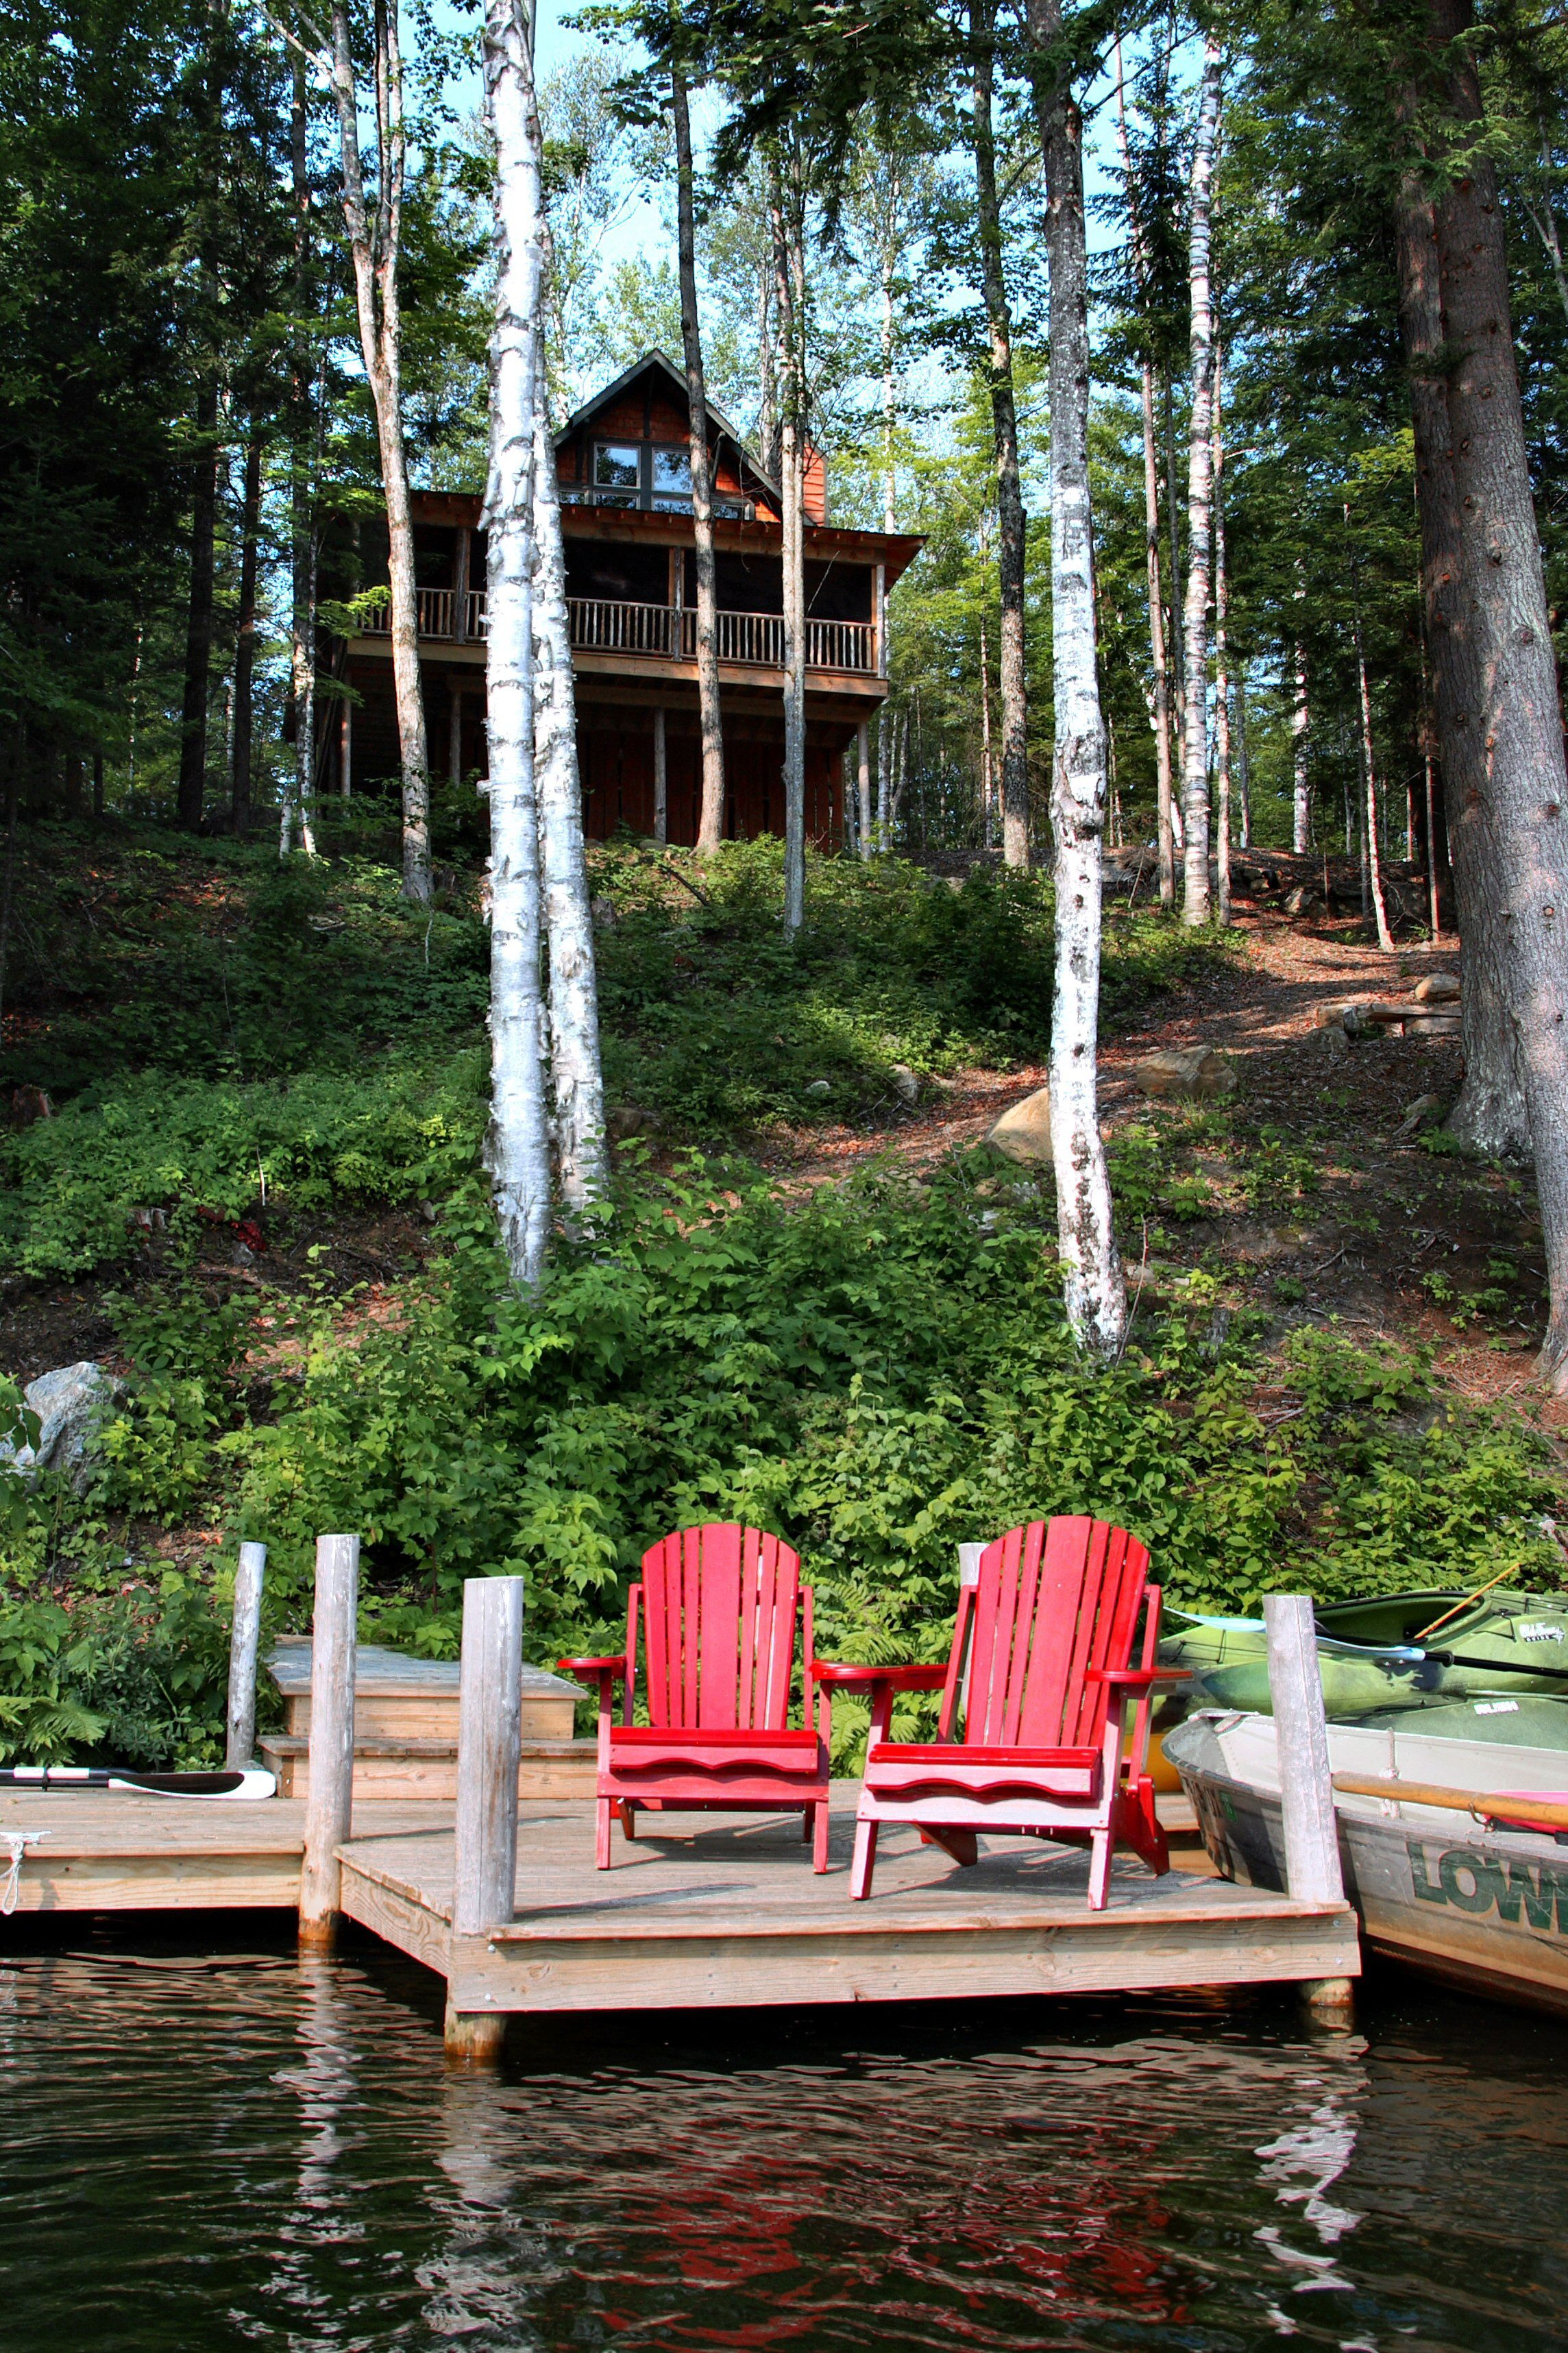 george resort in jellystone screen cabins book camp accommodations adirondack adirondacks now lake porch of rentals cabin log rental near at your img